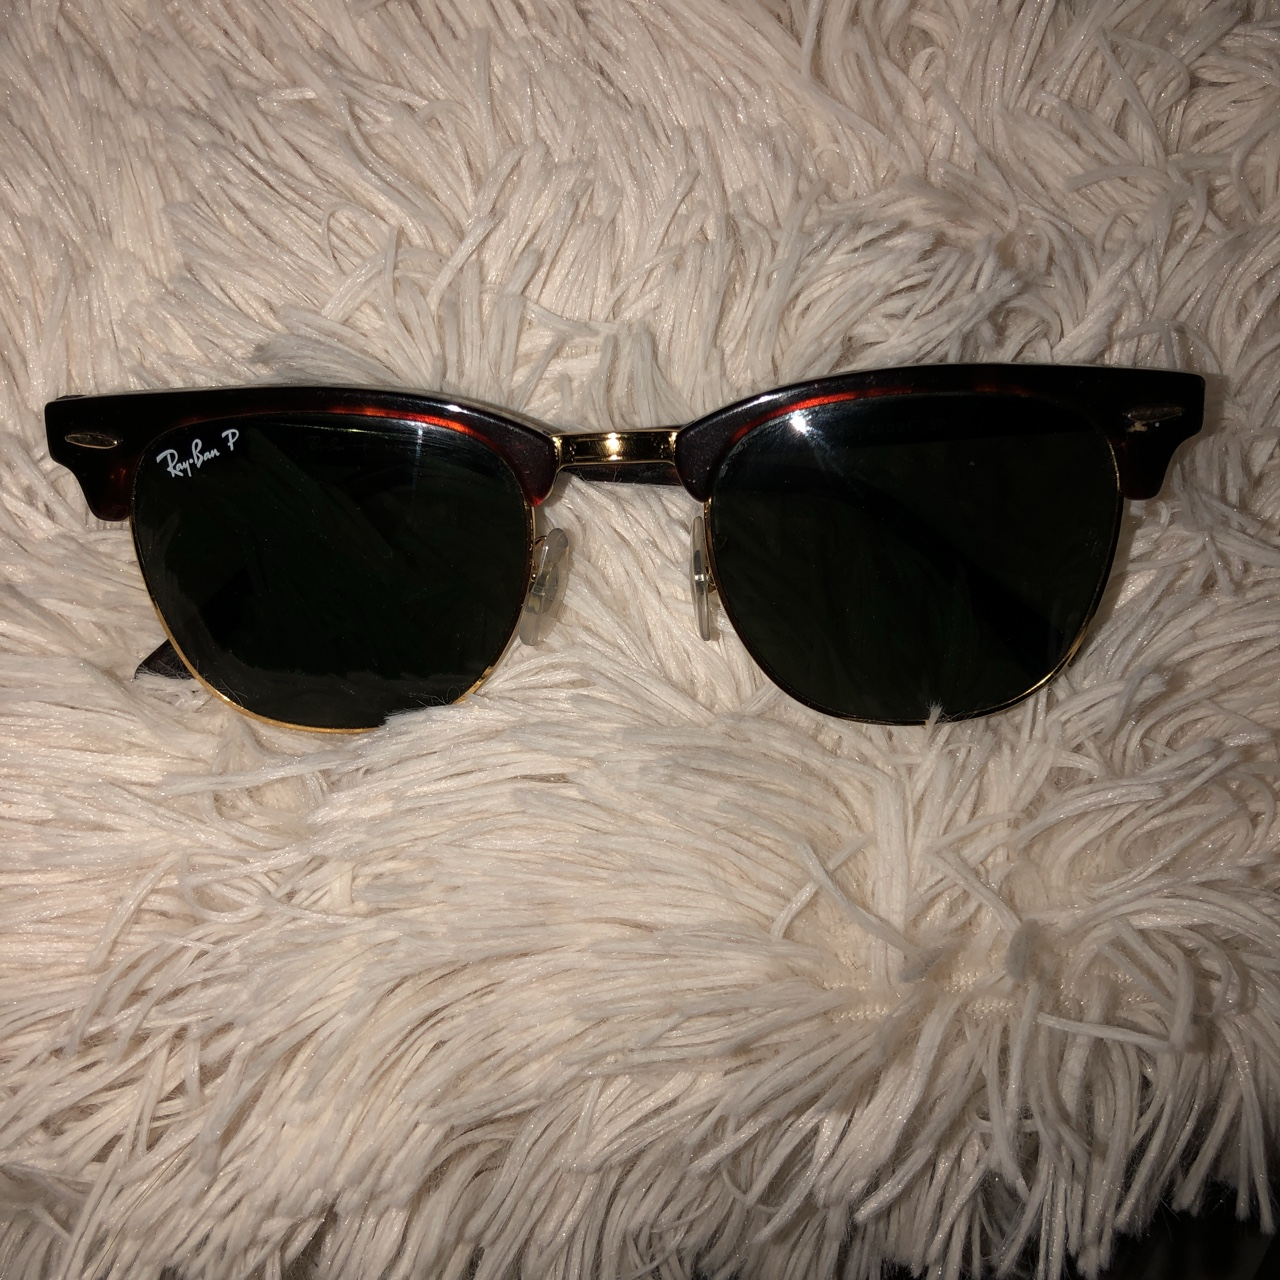 7c57b5587 angelaa_mc. Tempe, United States. Ray Ban Clubmaster polarized ...